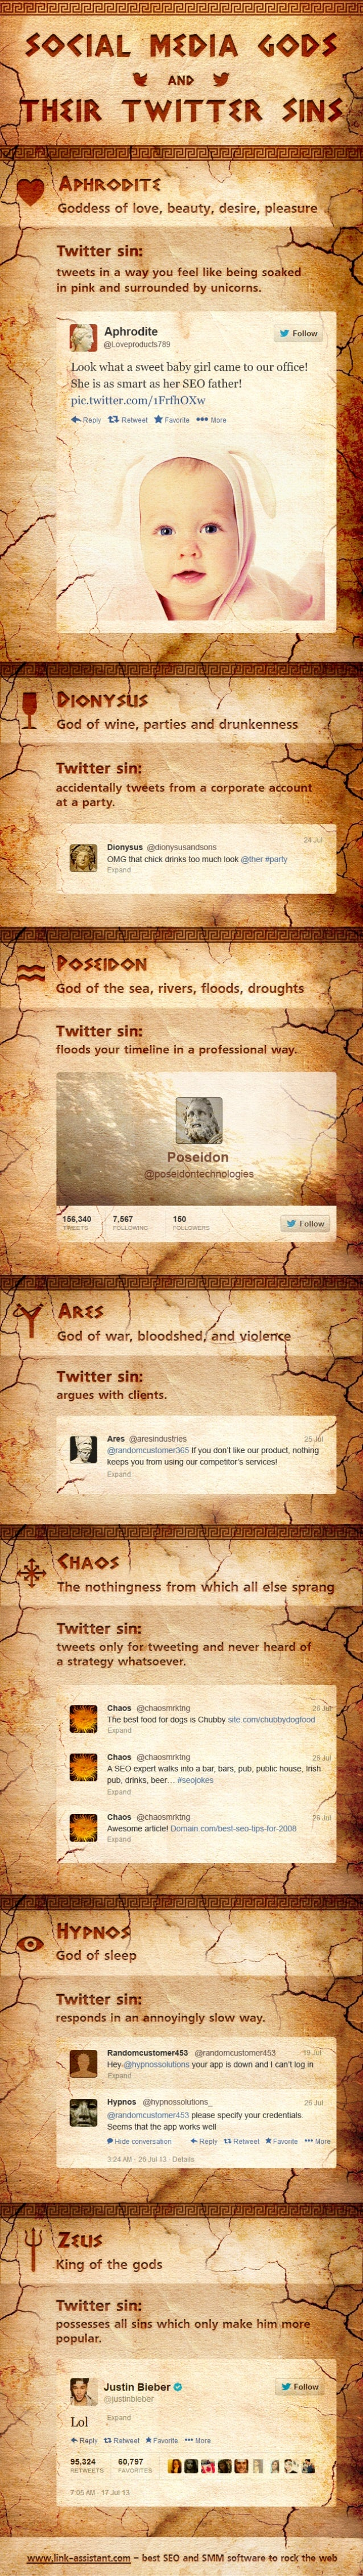 Social media gods and their Twitter sins